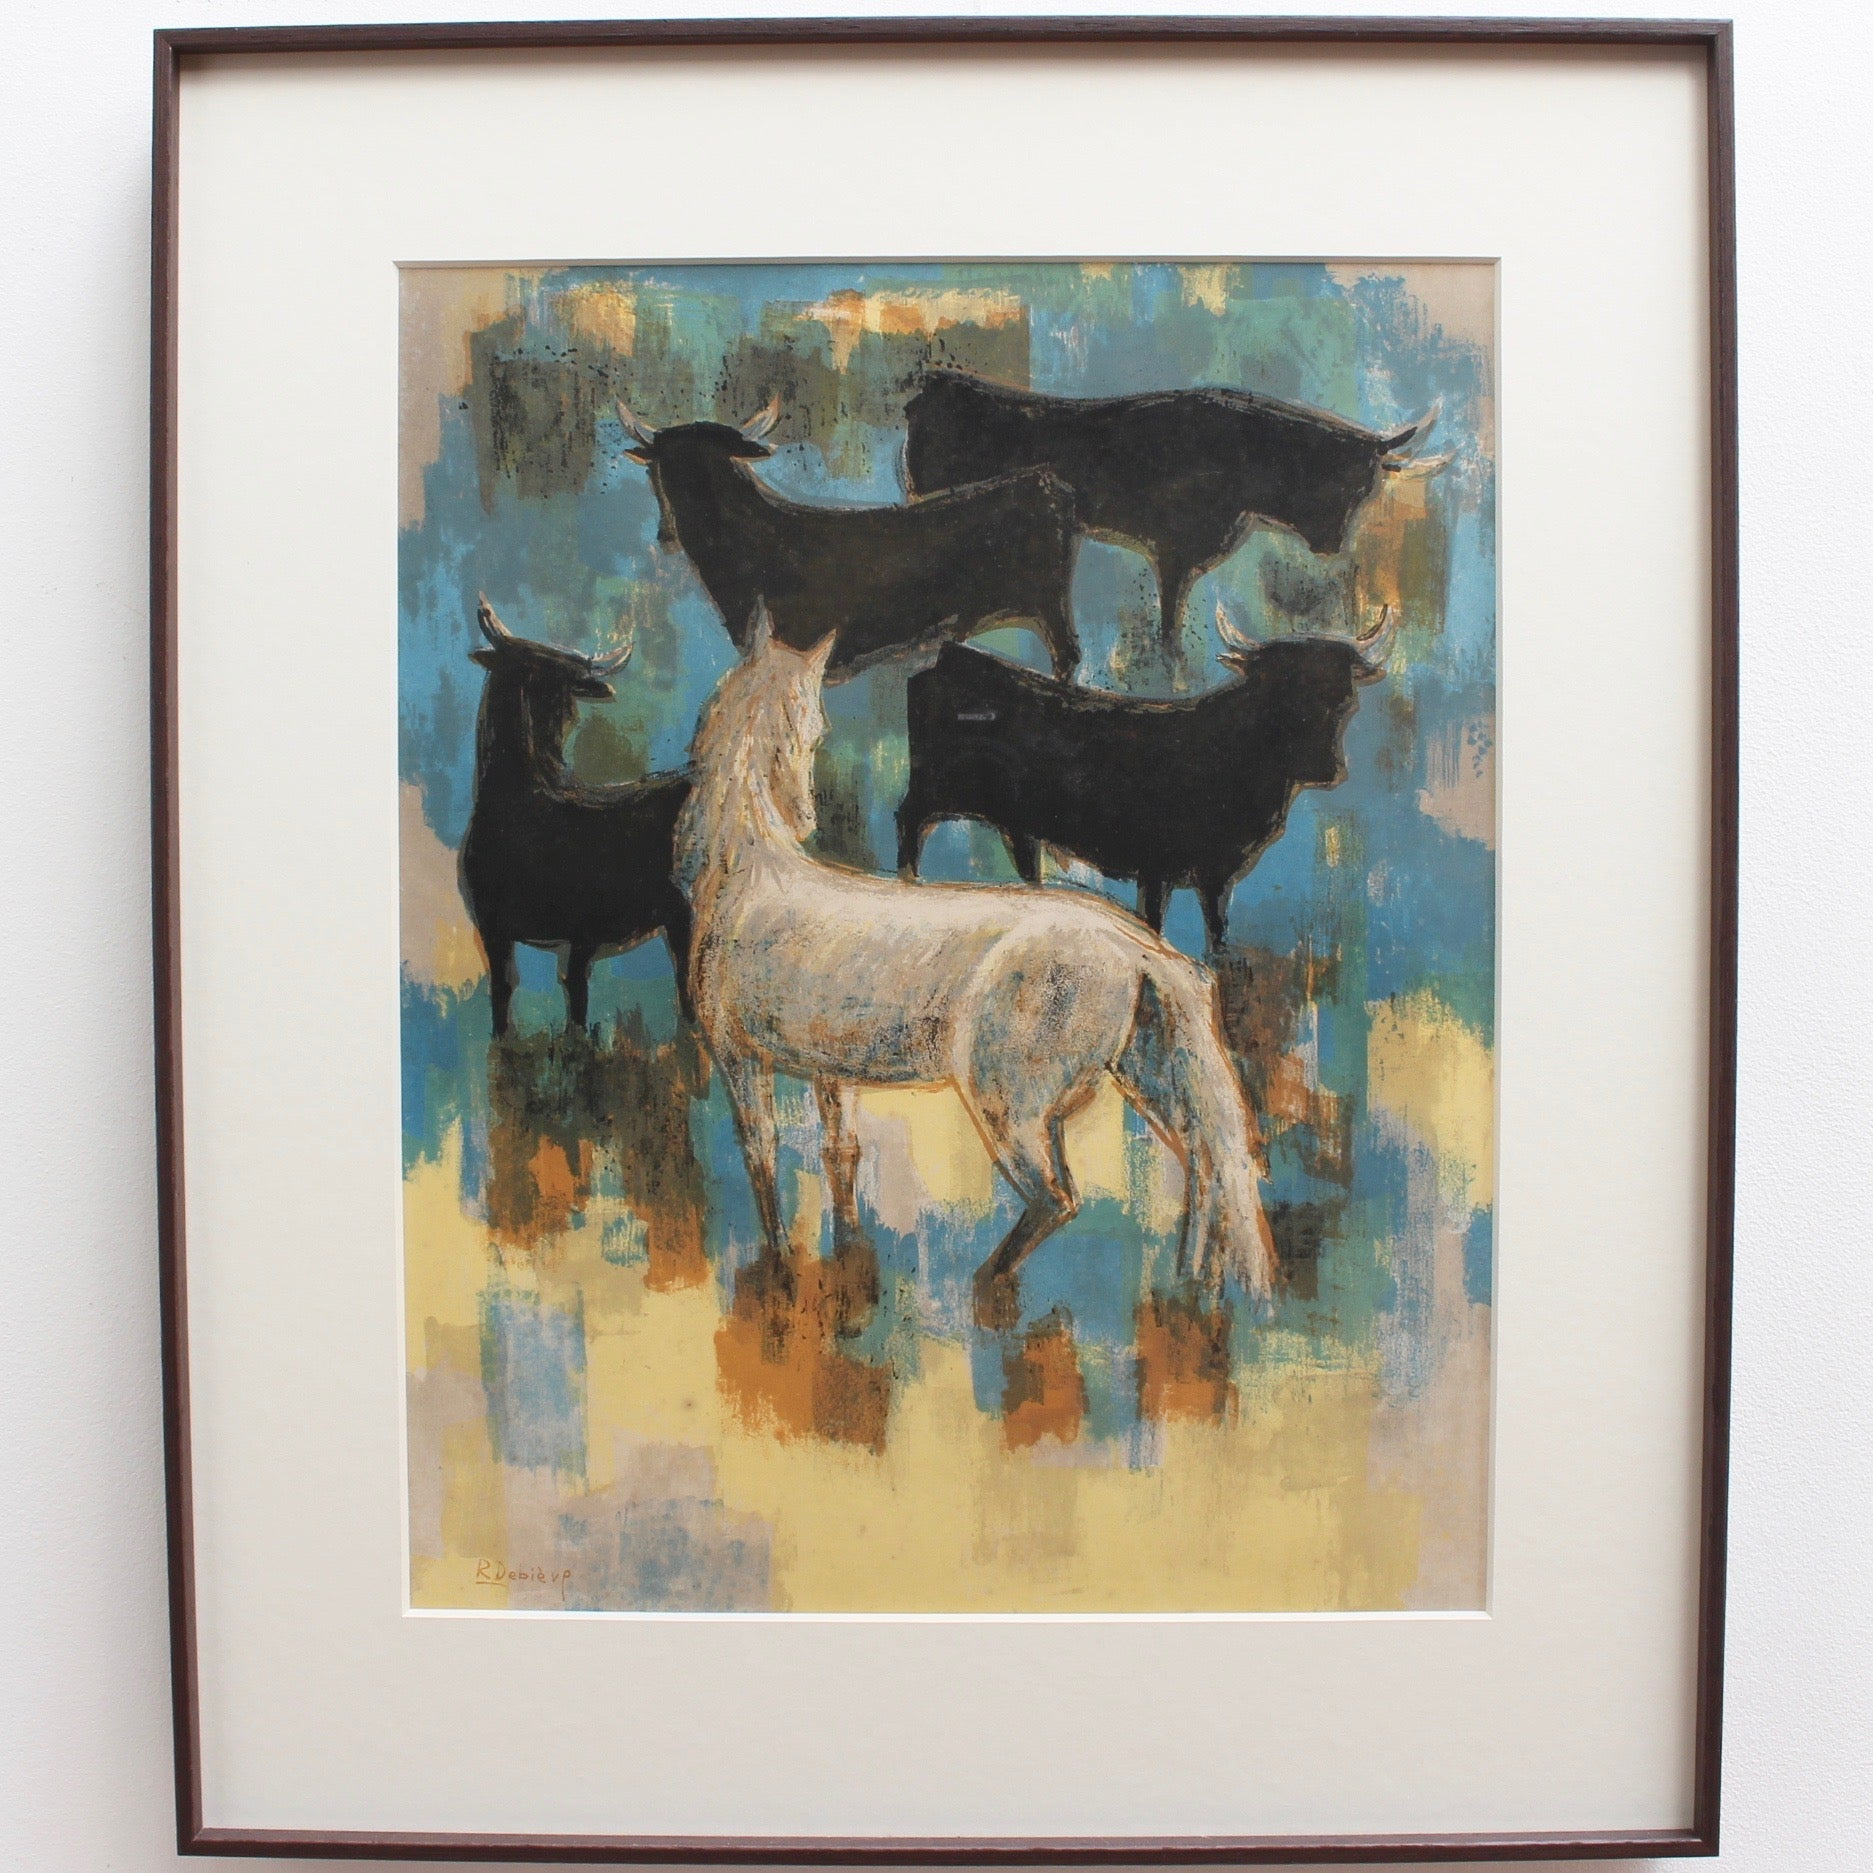 'The Horses and Bulls of the Camargue', Original Lithograph by Robert Debiève (circa 1960s)